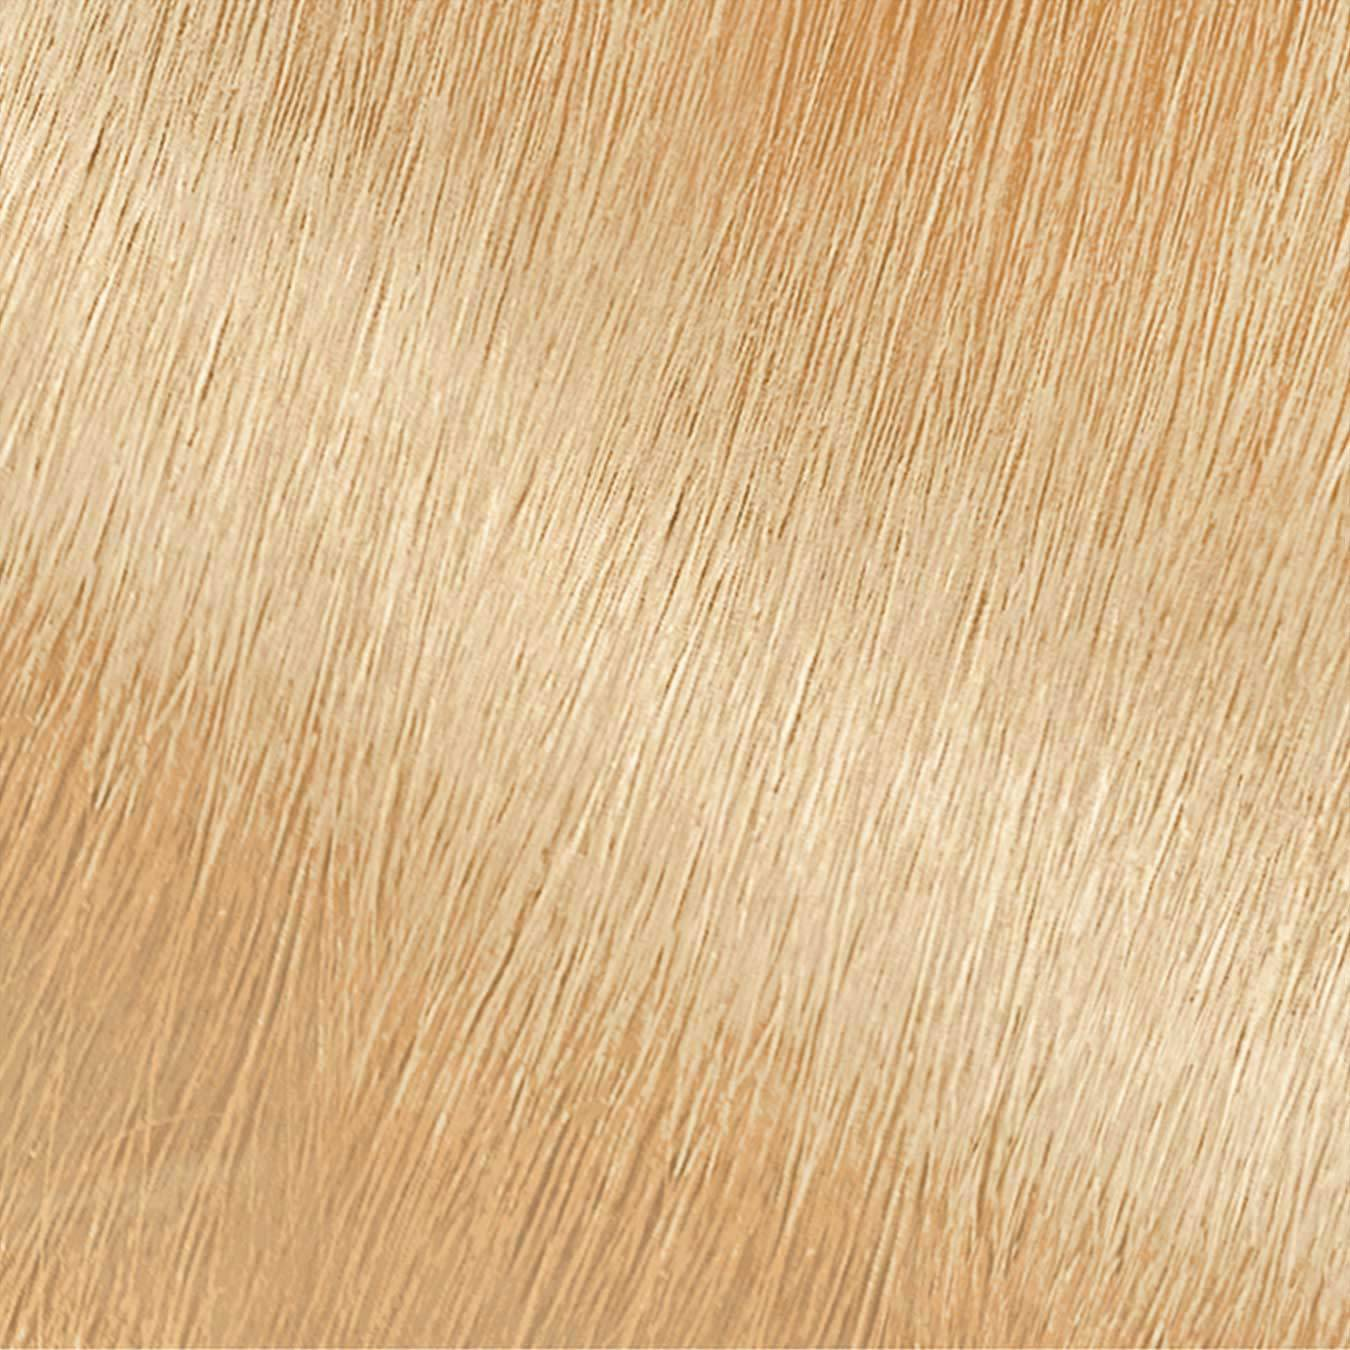 Garnier Nutrisse Nourishing Color Creme 101 - Extra Light Buttery Blonde Permanent Hair Color Swatch